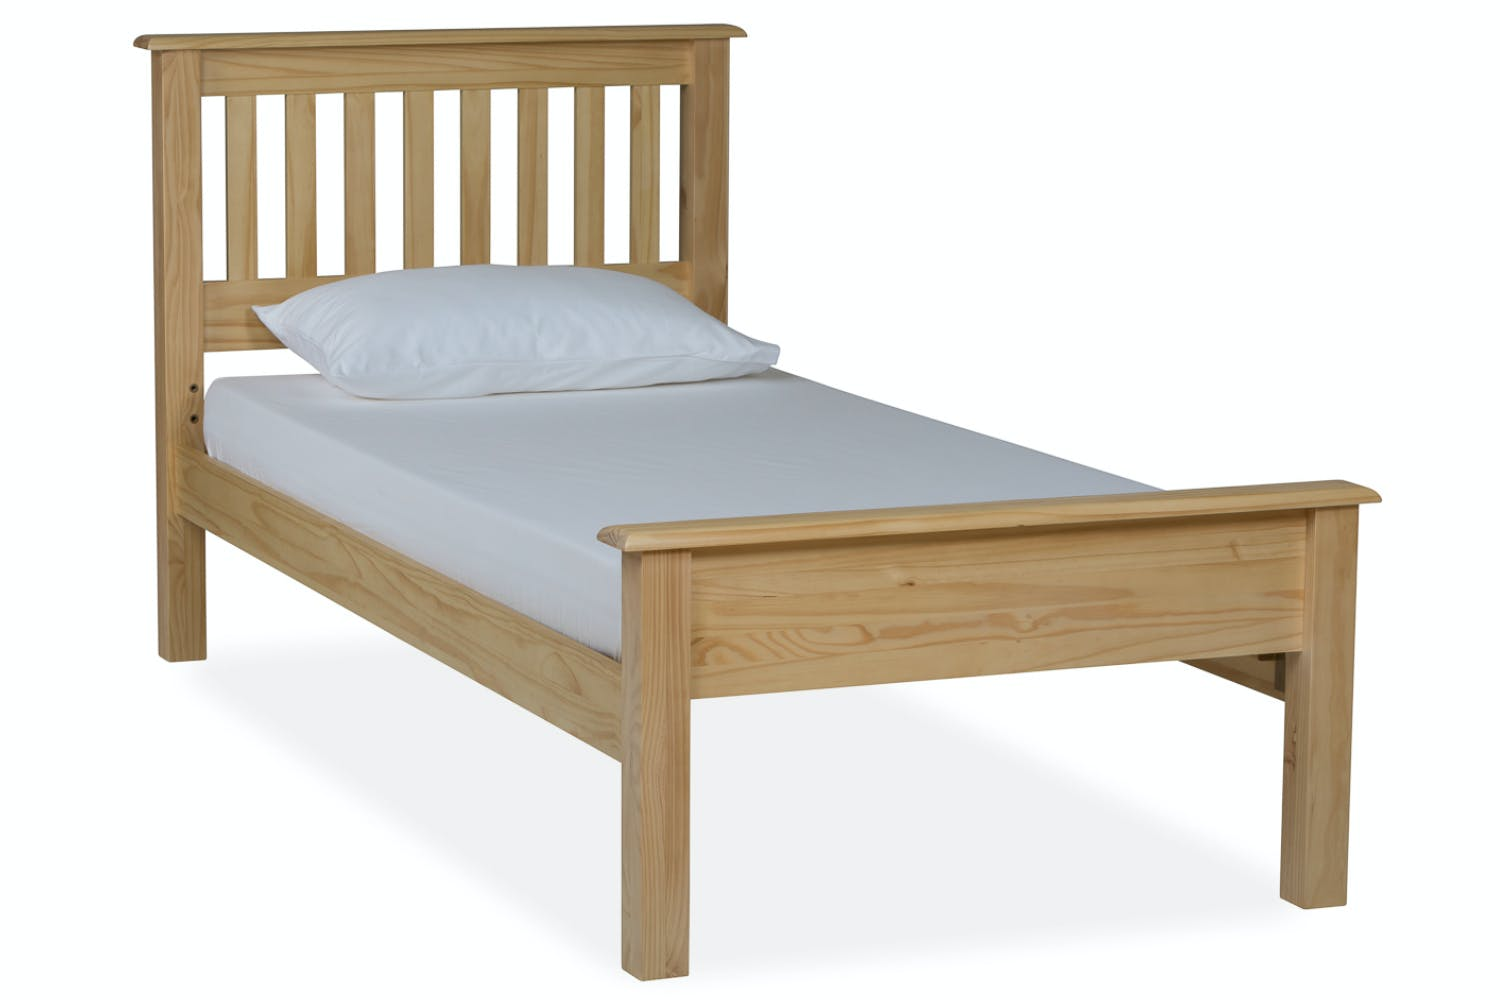 Shaker single bed frame 3ft ireland for Bed pictures photos